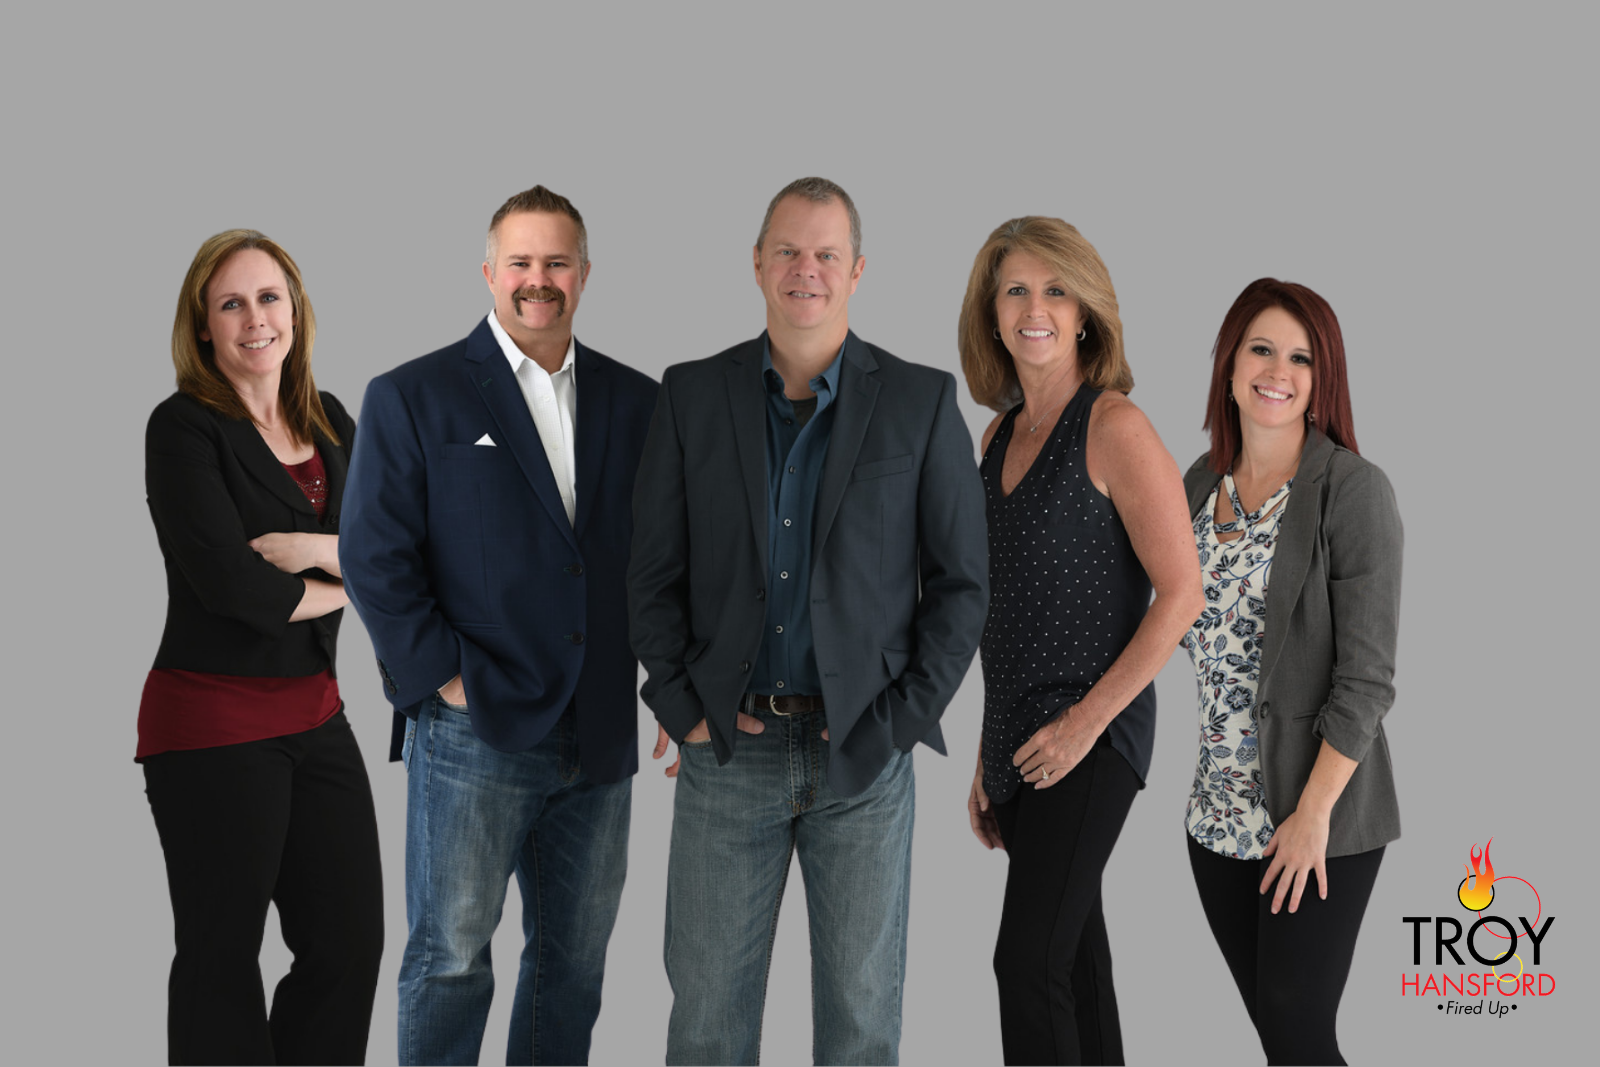 Troy Hansford Team with REMAX Professionals services the Denver, Aurora, Littleton and other metro areas of Colorado real estate.